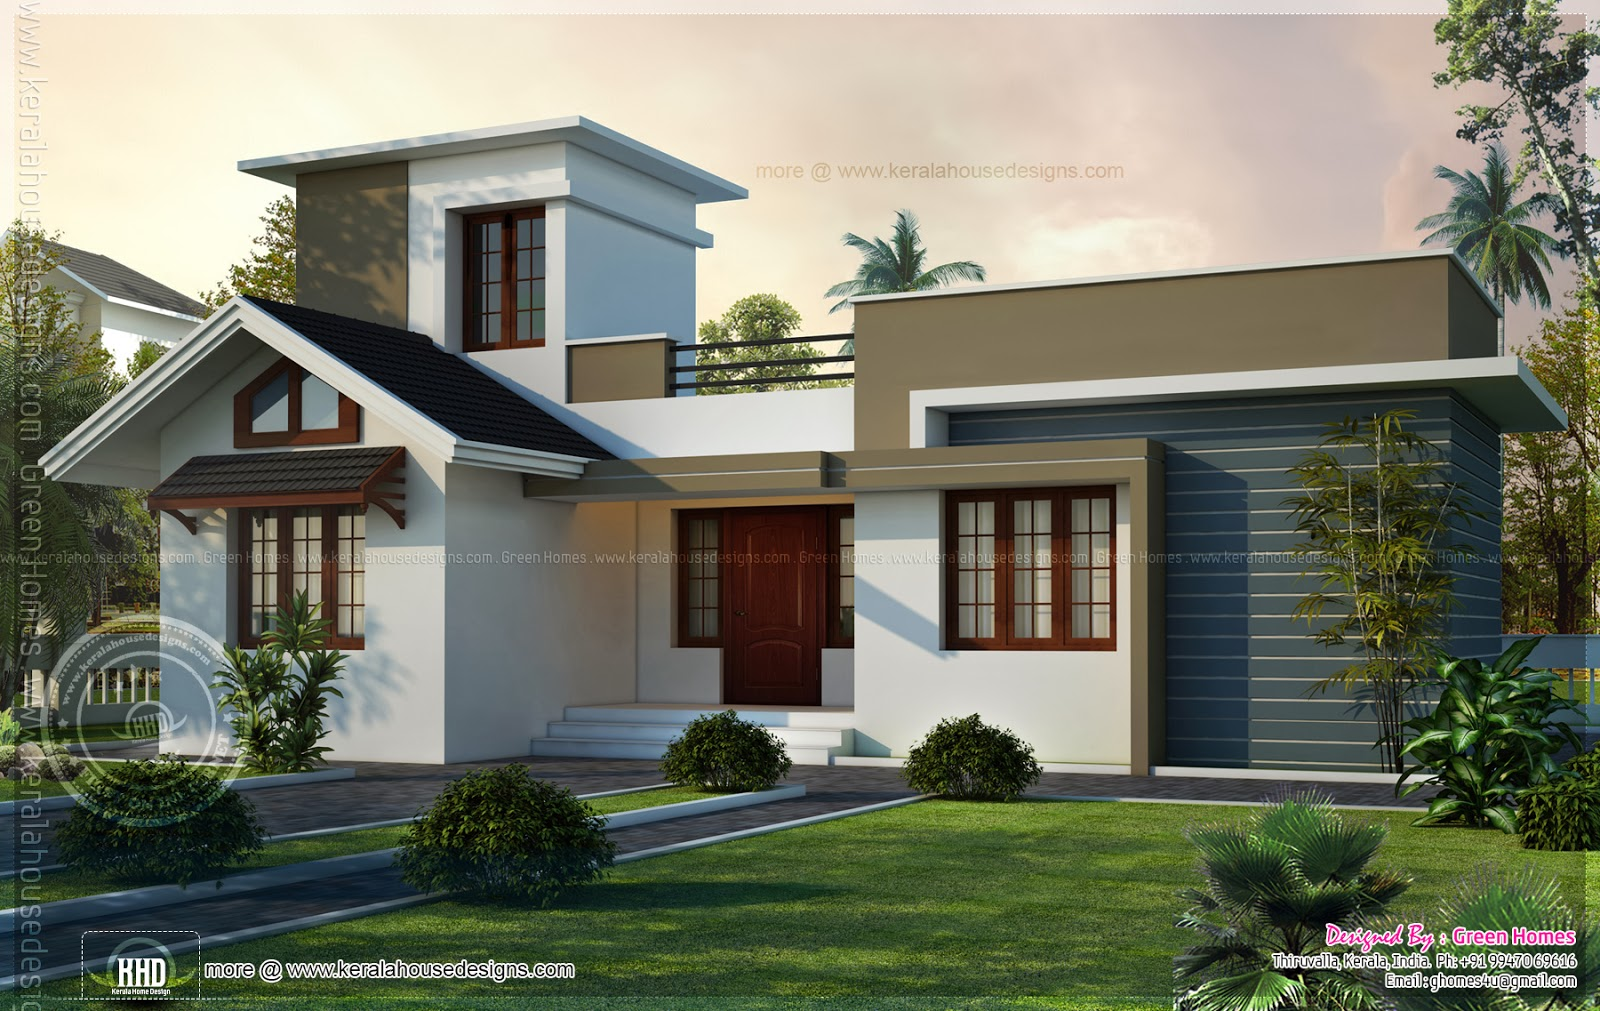 1000 square feet small house design kerala home design for Small house design with roof deck